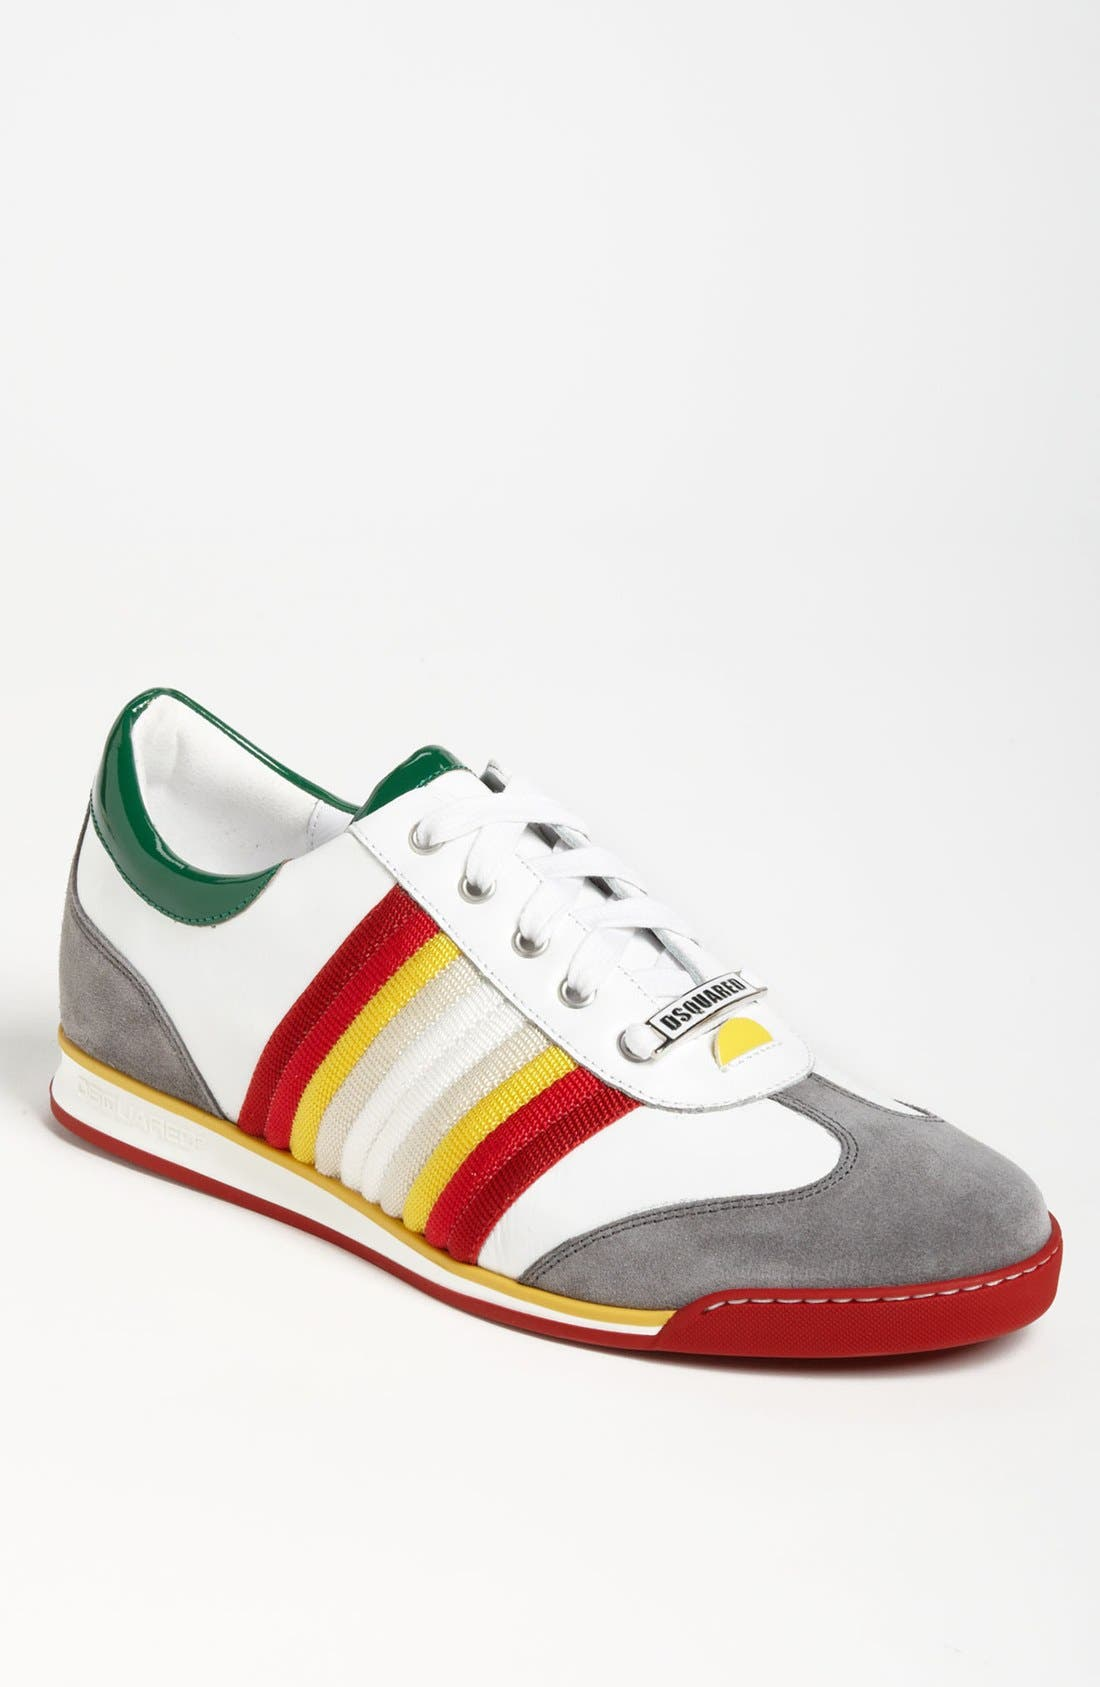 Alternate Image 1 Selected - Dsquared2 'New Runner' Sneaker